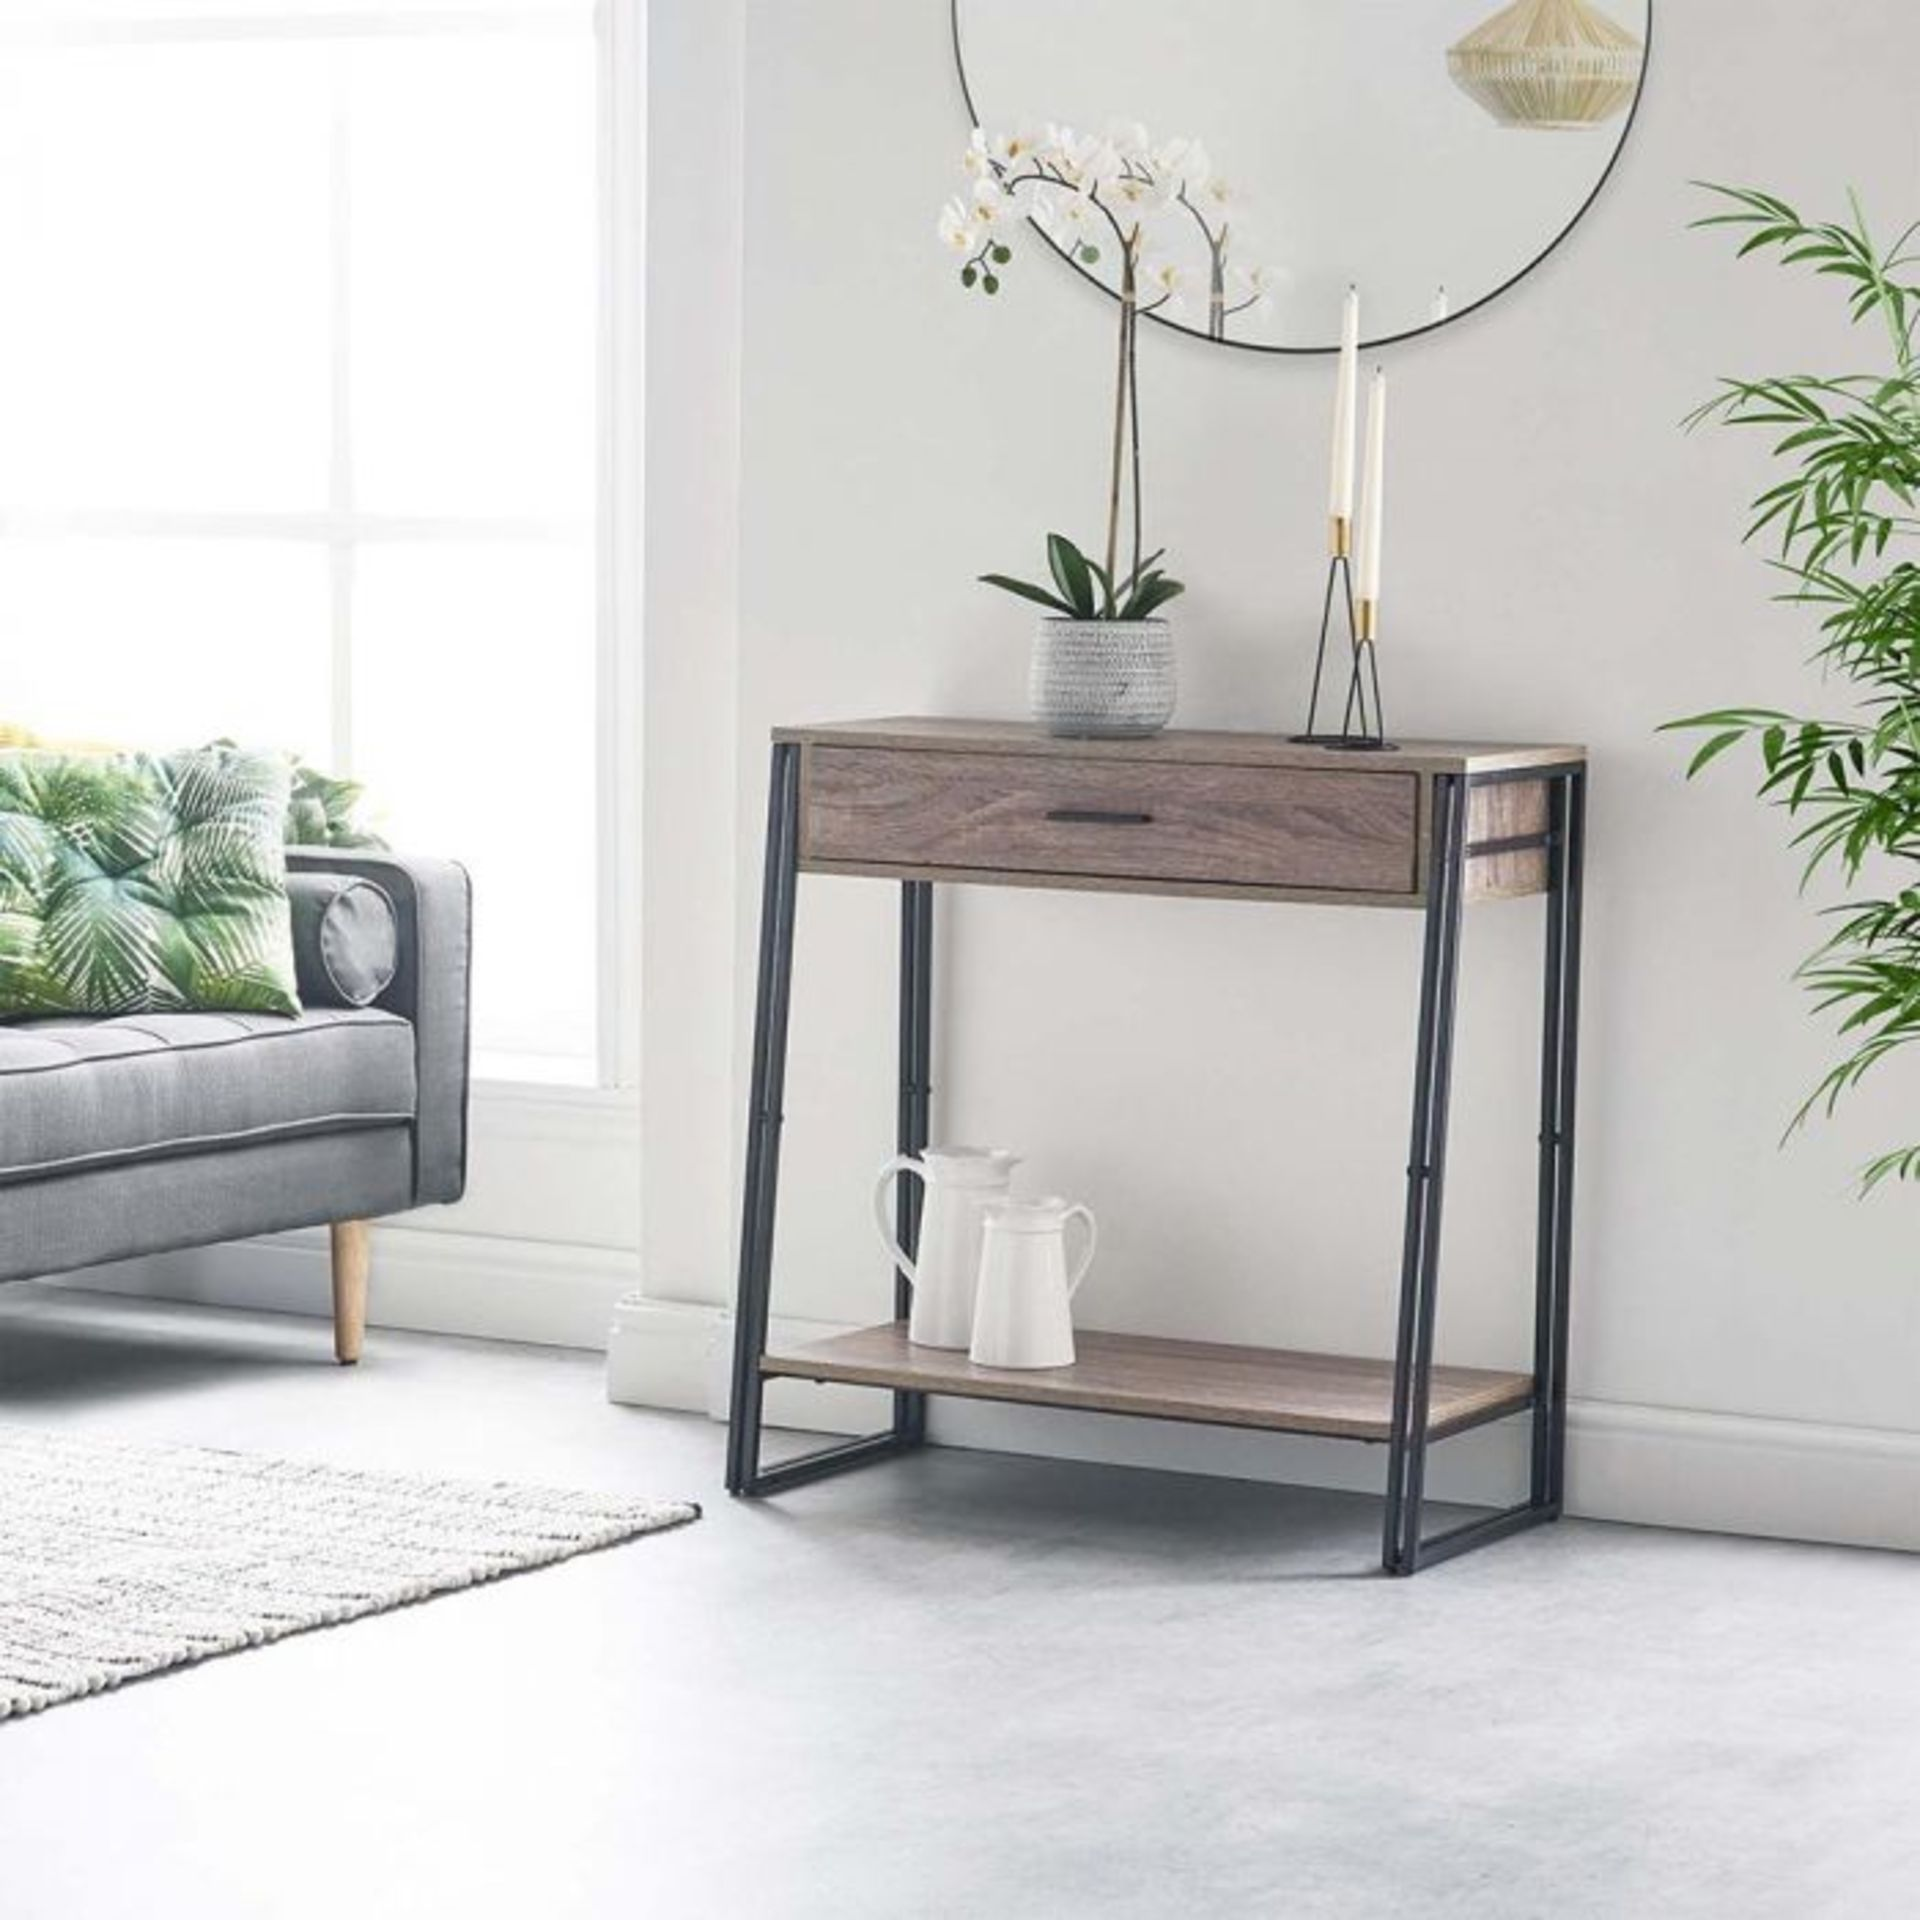 Lot 412 - (S446) Rustic Console Table Handy console table makes the perfect addition to your hallway Ur...